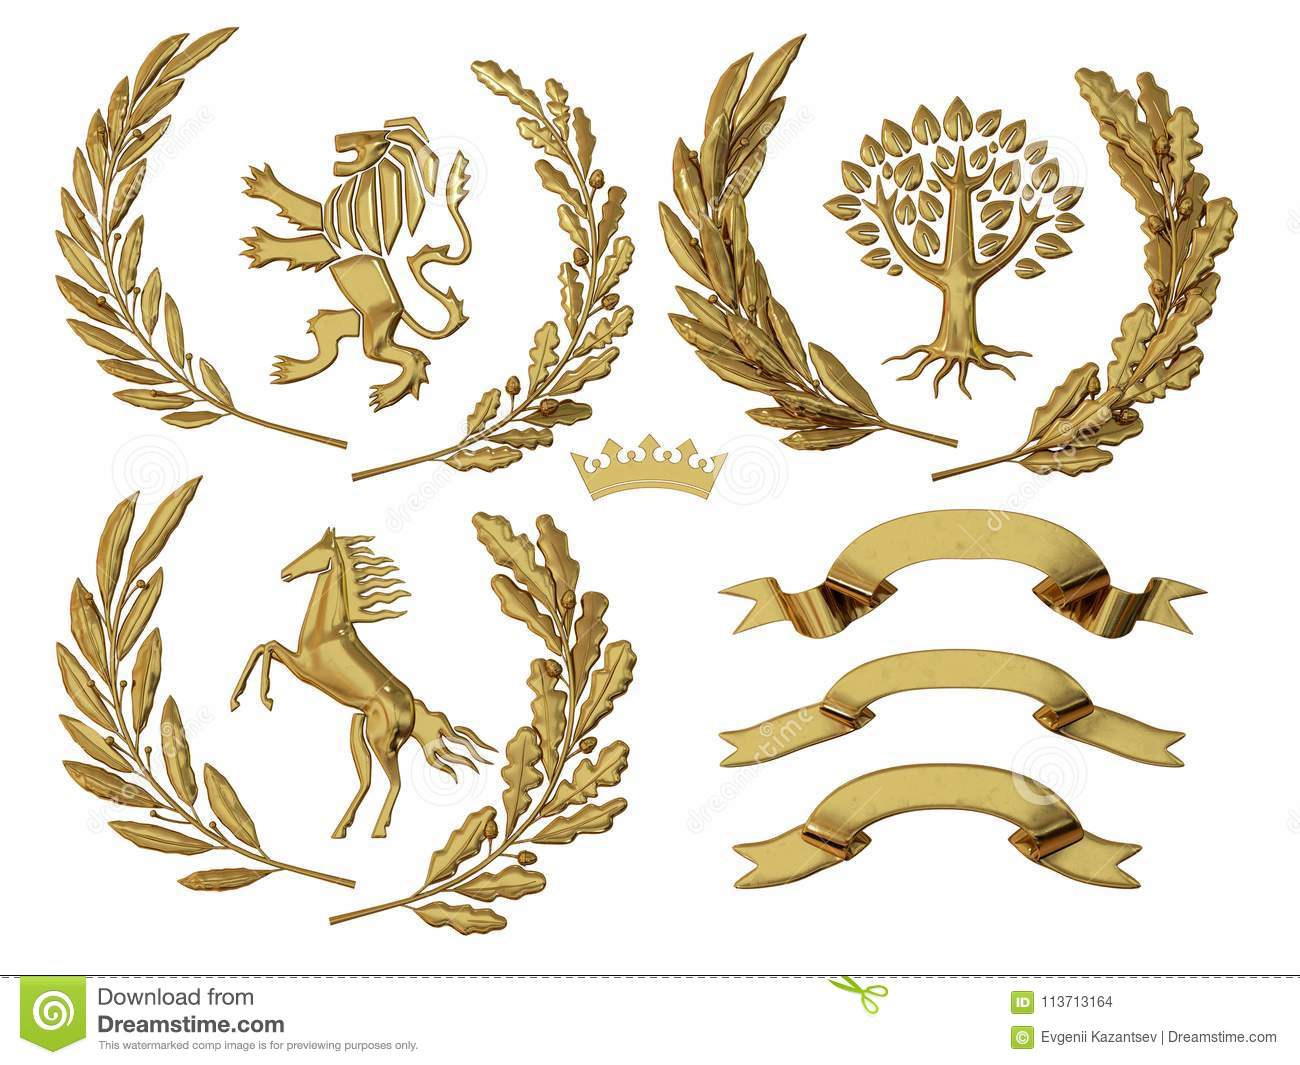 3D illustration of heraldry. A set of objects. Golden olive branches, oak branches, crowns, lion, horse, tree